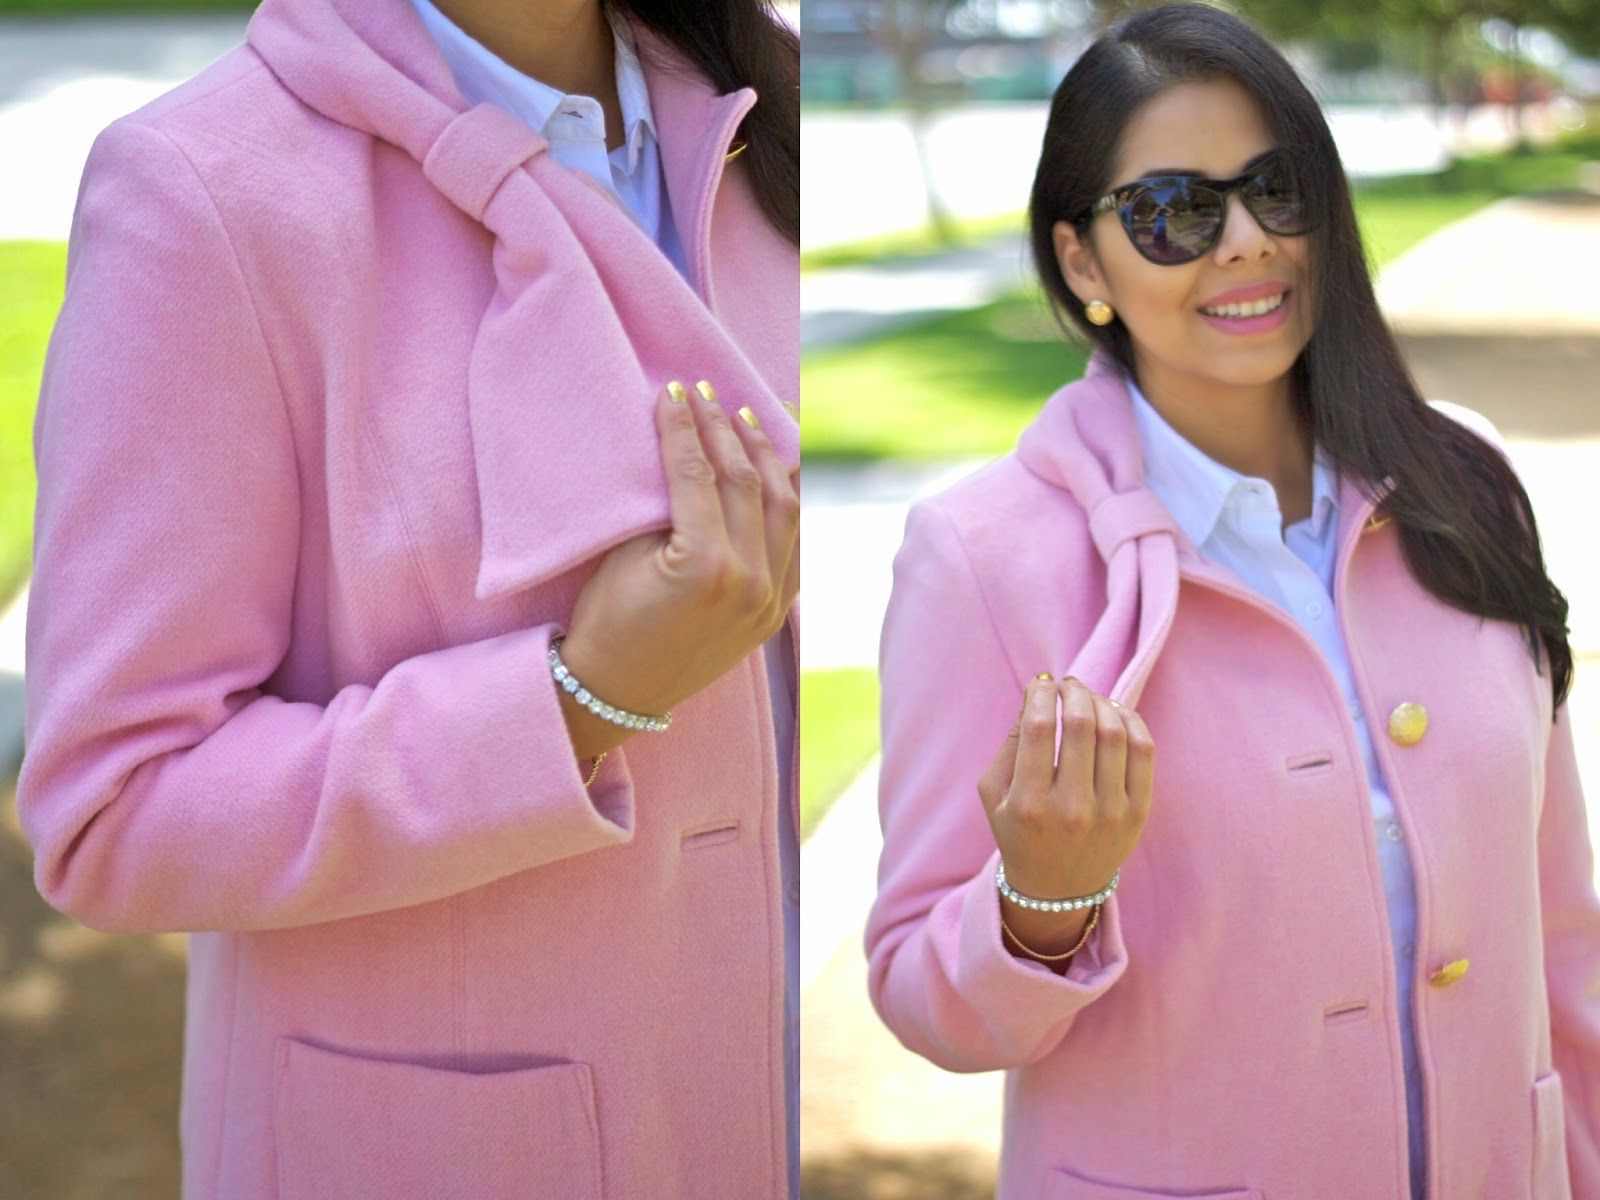 Pastel pink coat for Fall 2014, pastels for Fall 2014, san diego fashion blogger, how to wear pastels for Fall, how to wear pastels in winter, gold buttons, gold foiled nails, blush colored coat